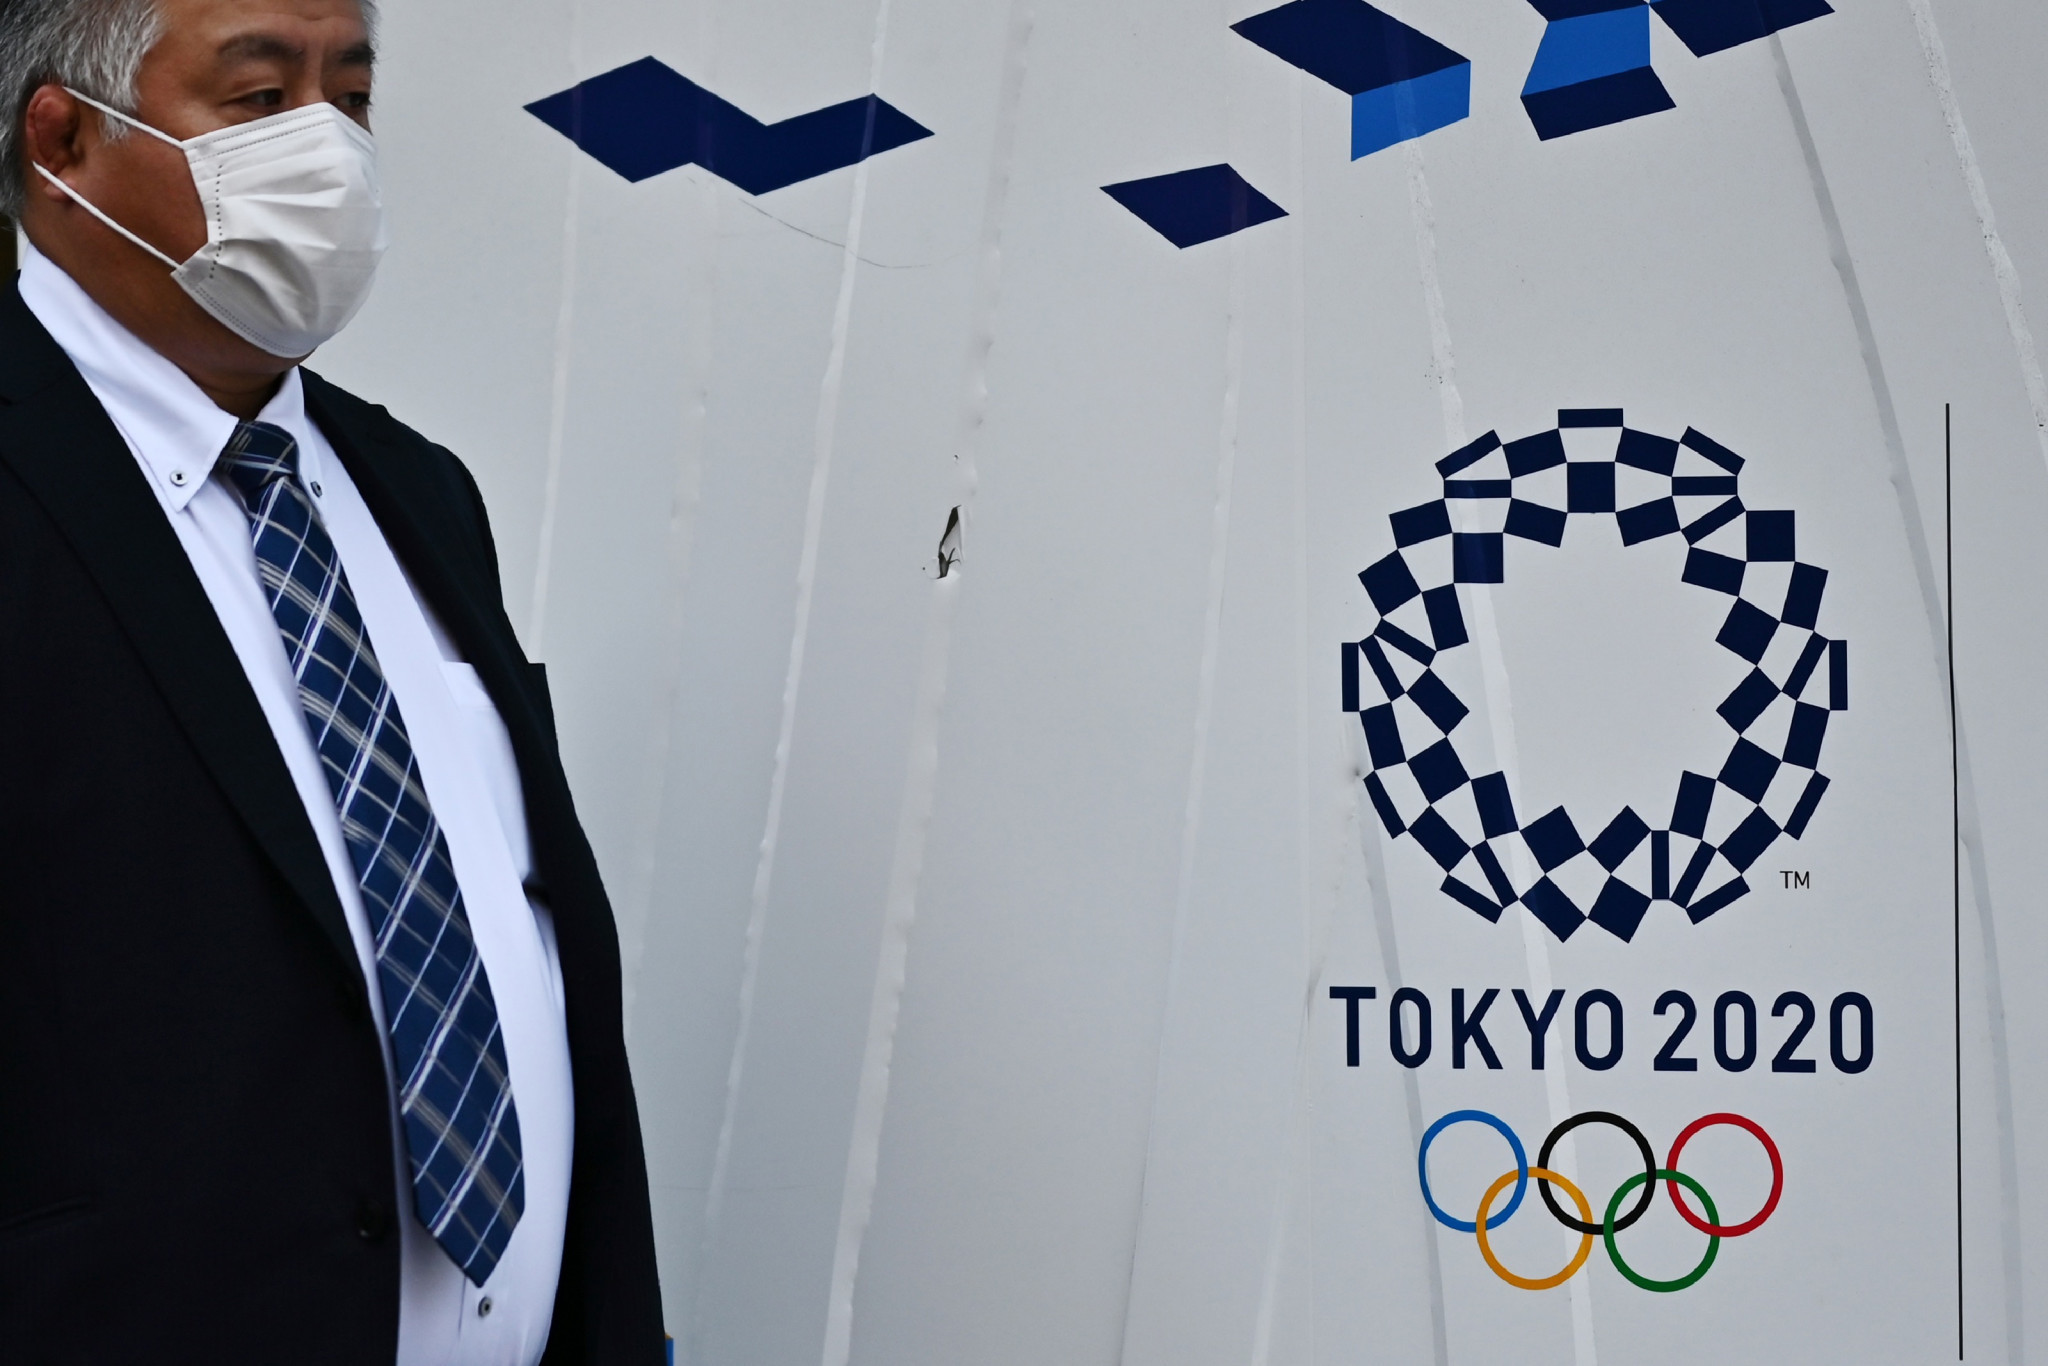 SMBC Nikko Securities Inc. believes the Tokyo 2020 Olympics will be cancelled if the spread of coronavirus continues until July ©Getty Images